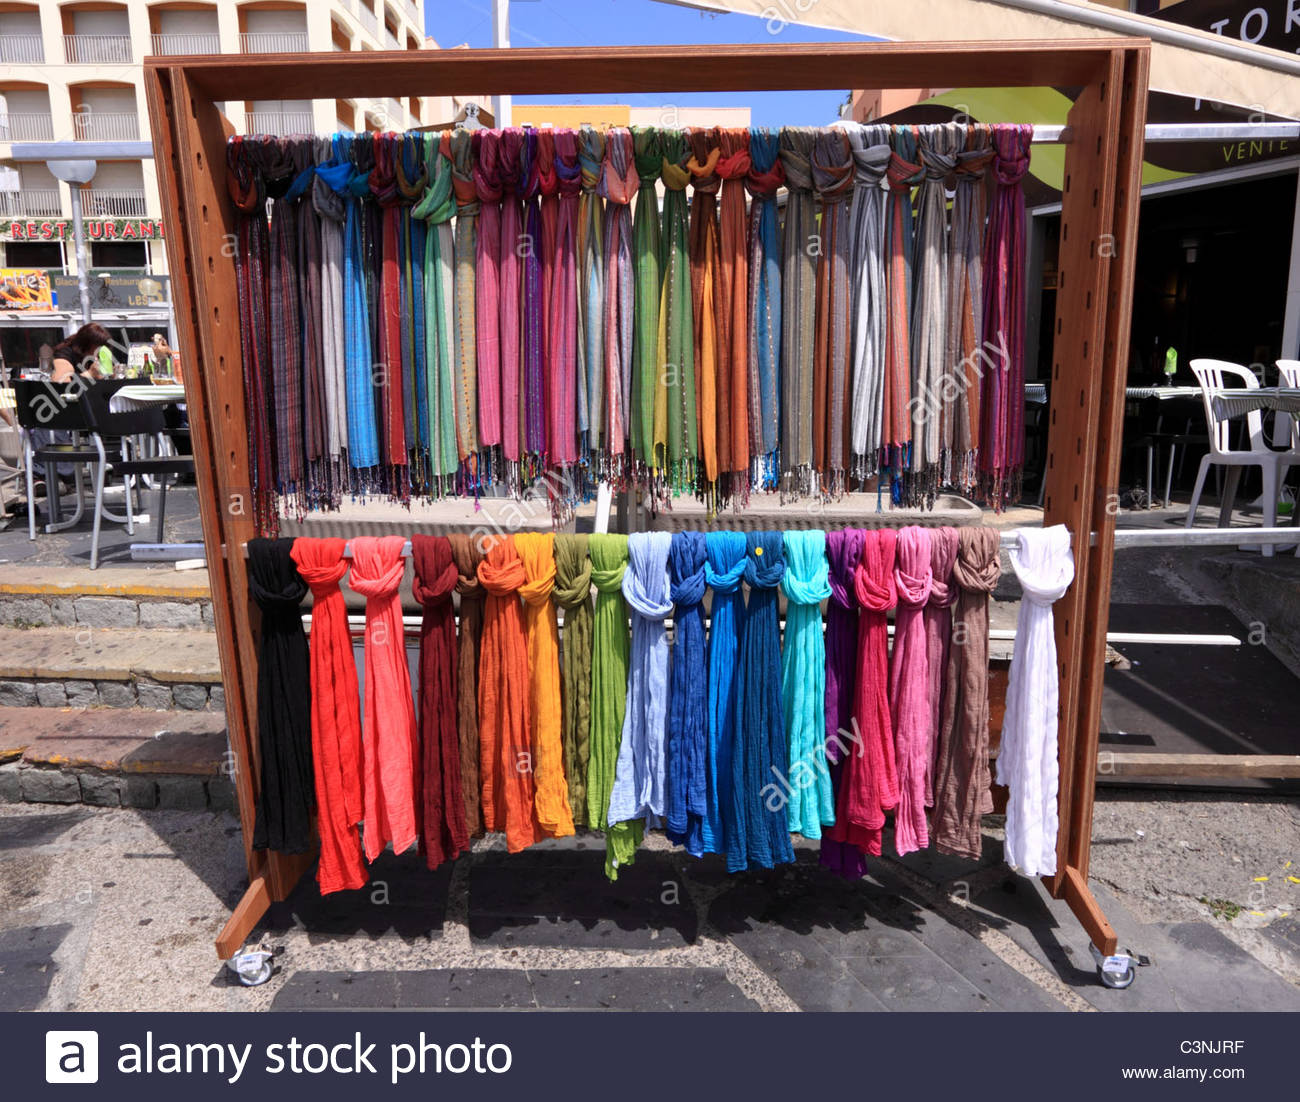 Colourful/colorful display of scarves for sale outside a store ...